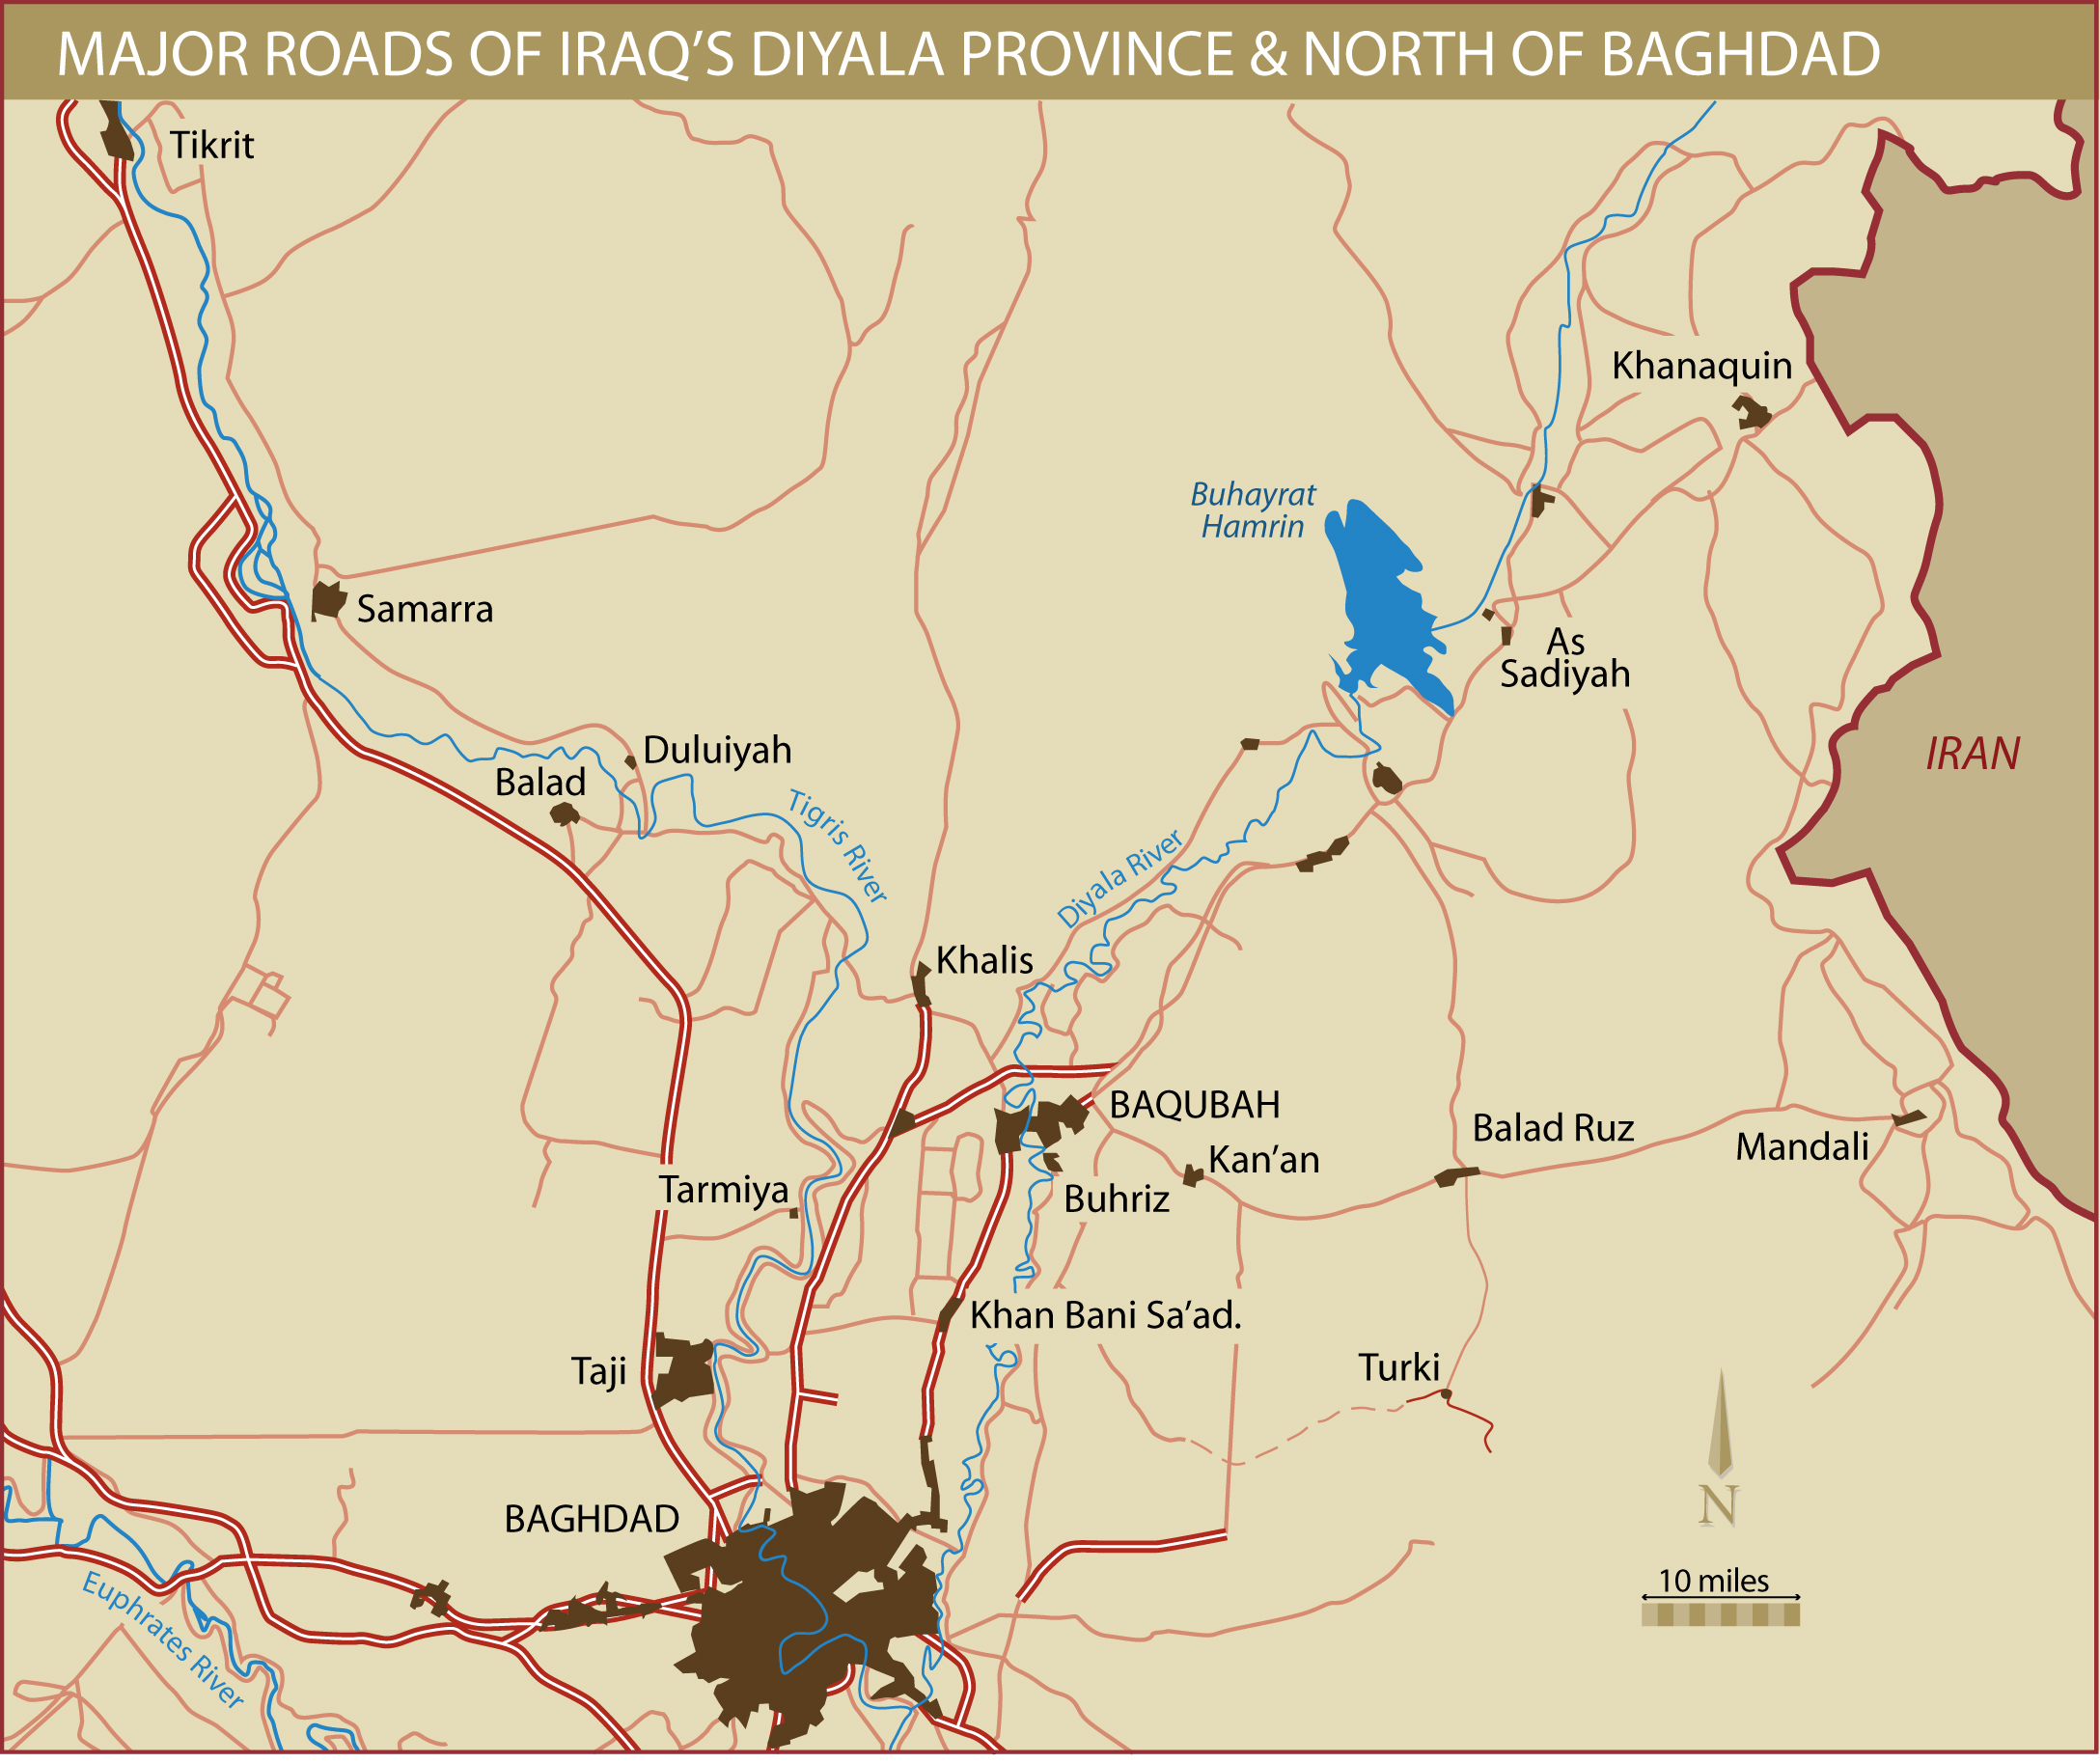 northern baghdad and diyala province roads